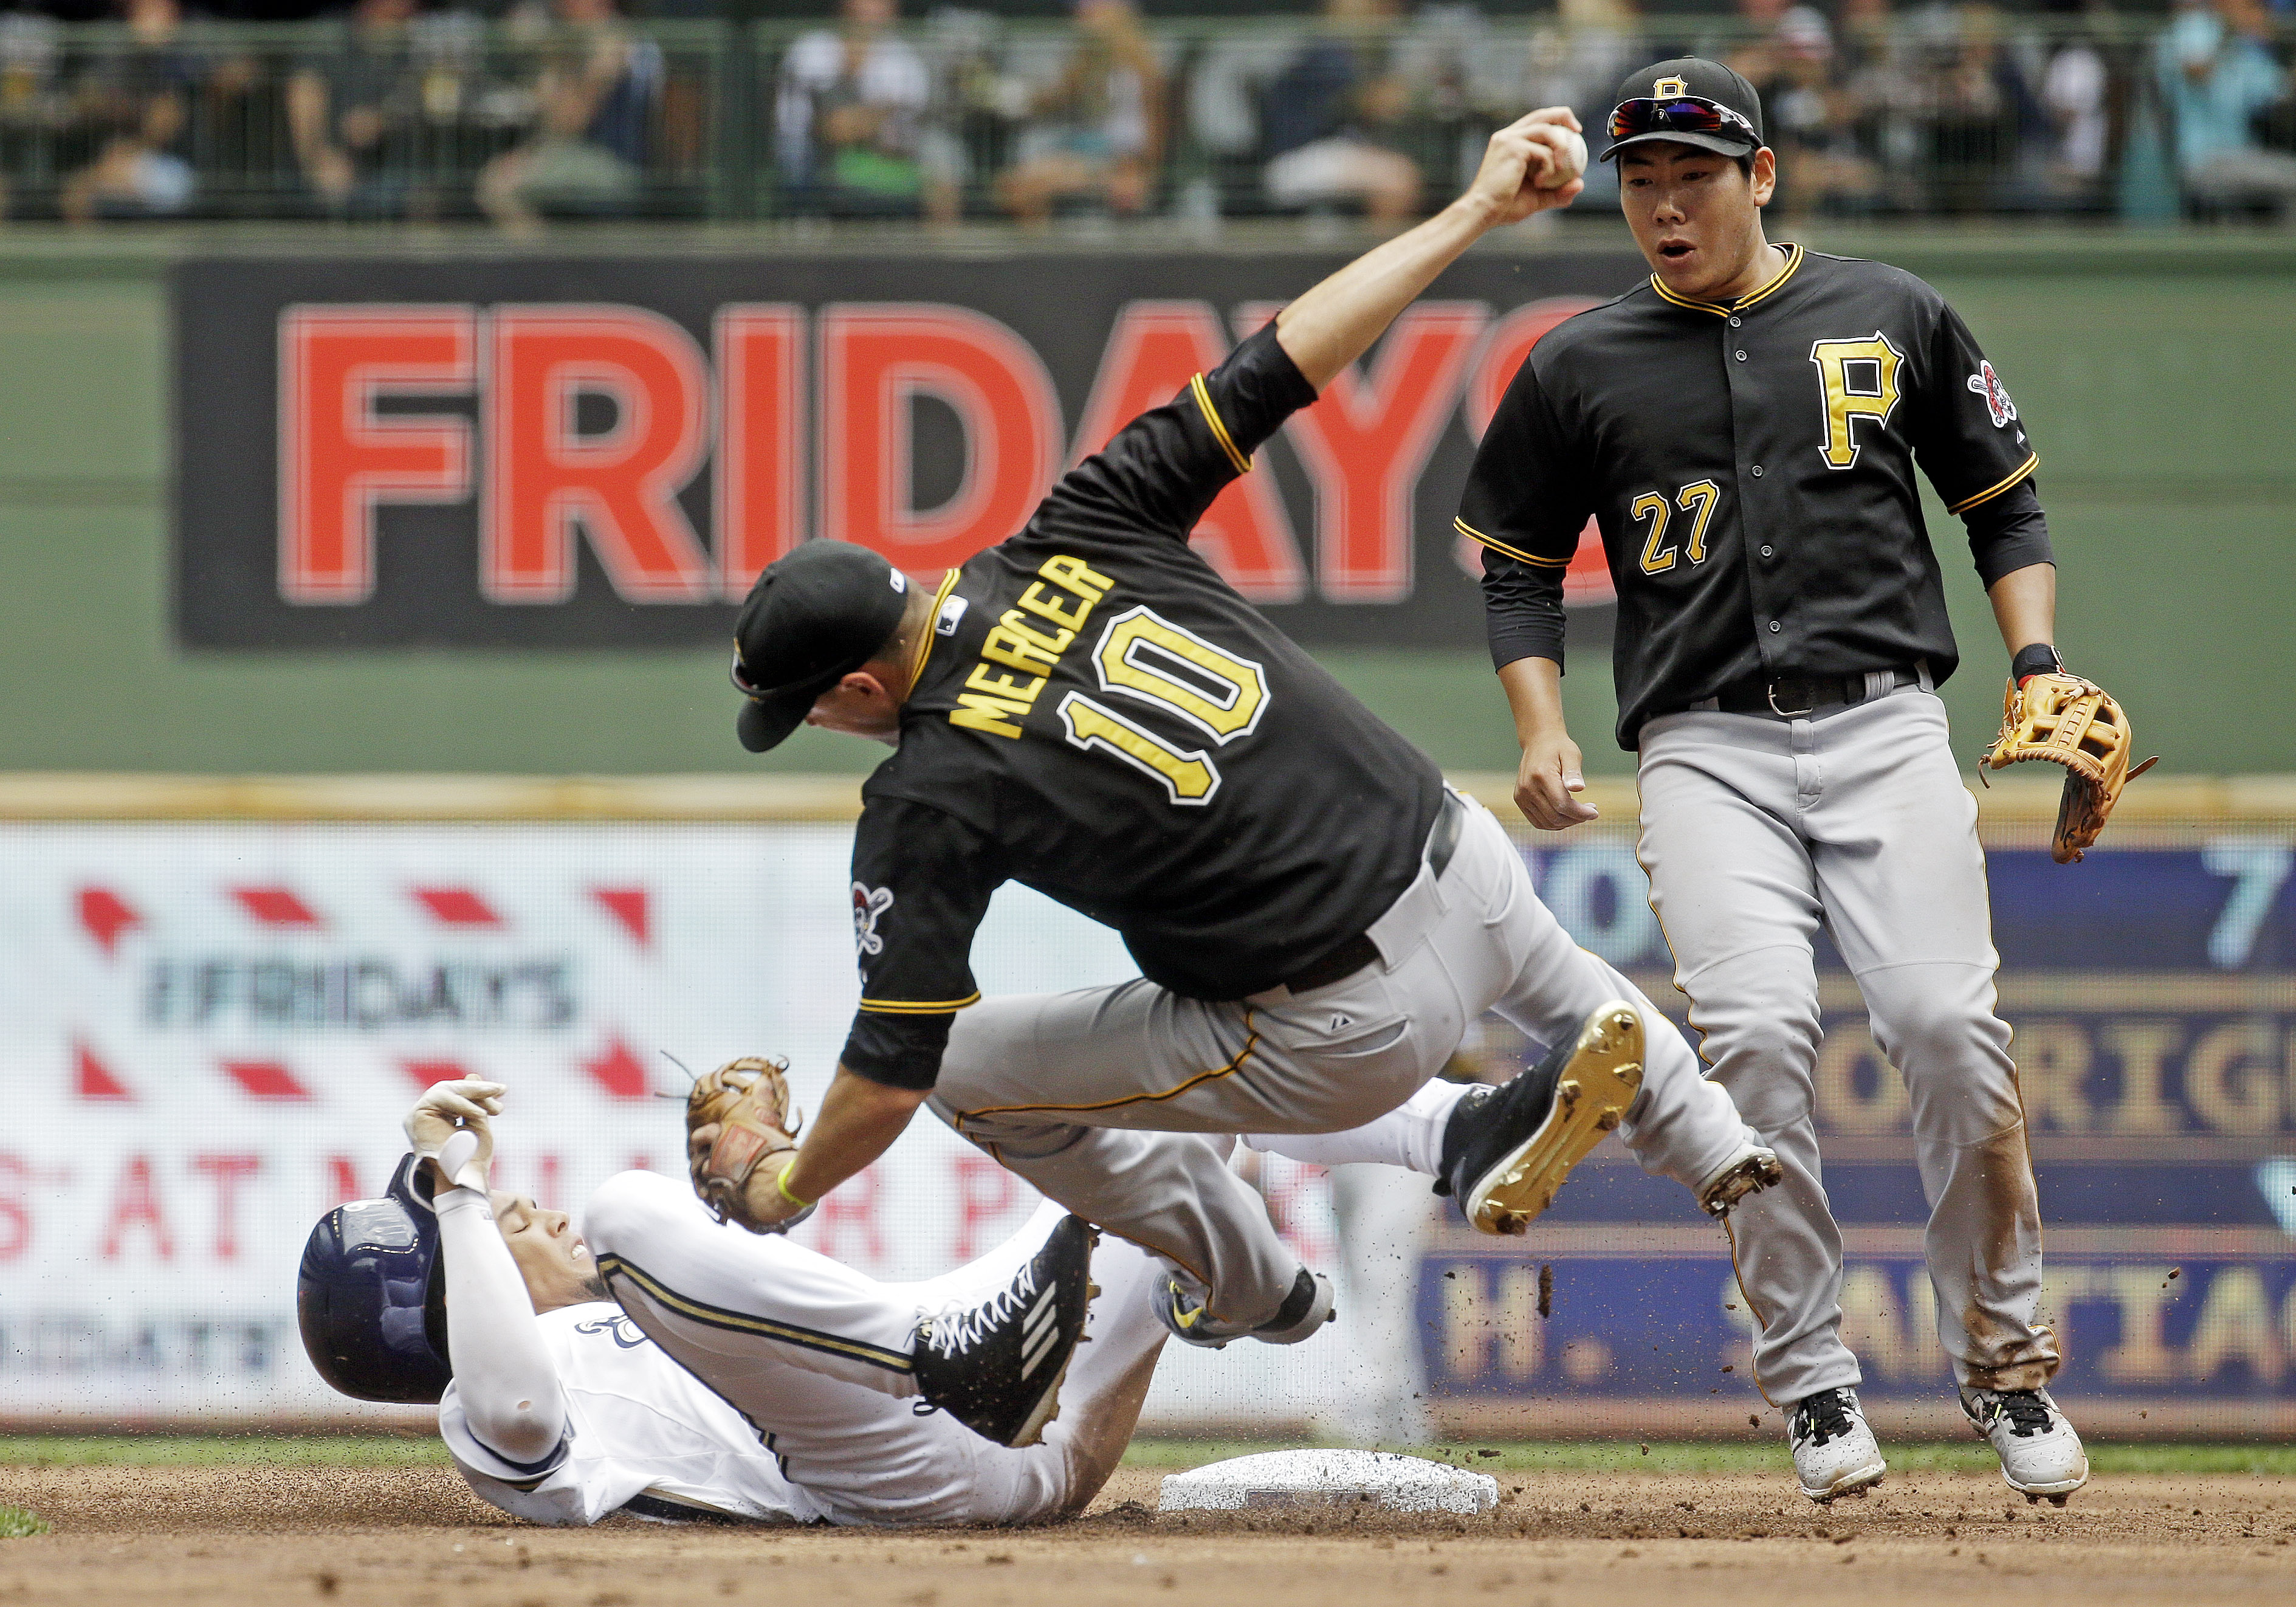 Pittsburgh Pirates' Jung Ho Kang (27) watches as teammate Jordy Mercer (10) collides with Milwaukee Brewers' Carlos Gomez during the second inning of a baseball game Sunday, July 19, 2015, in Milwaukee. Gomez was out on the play and Mercer left the game o